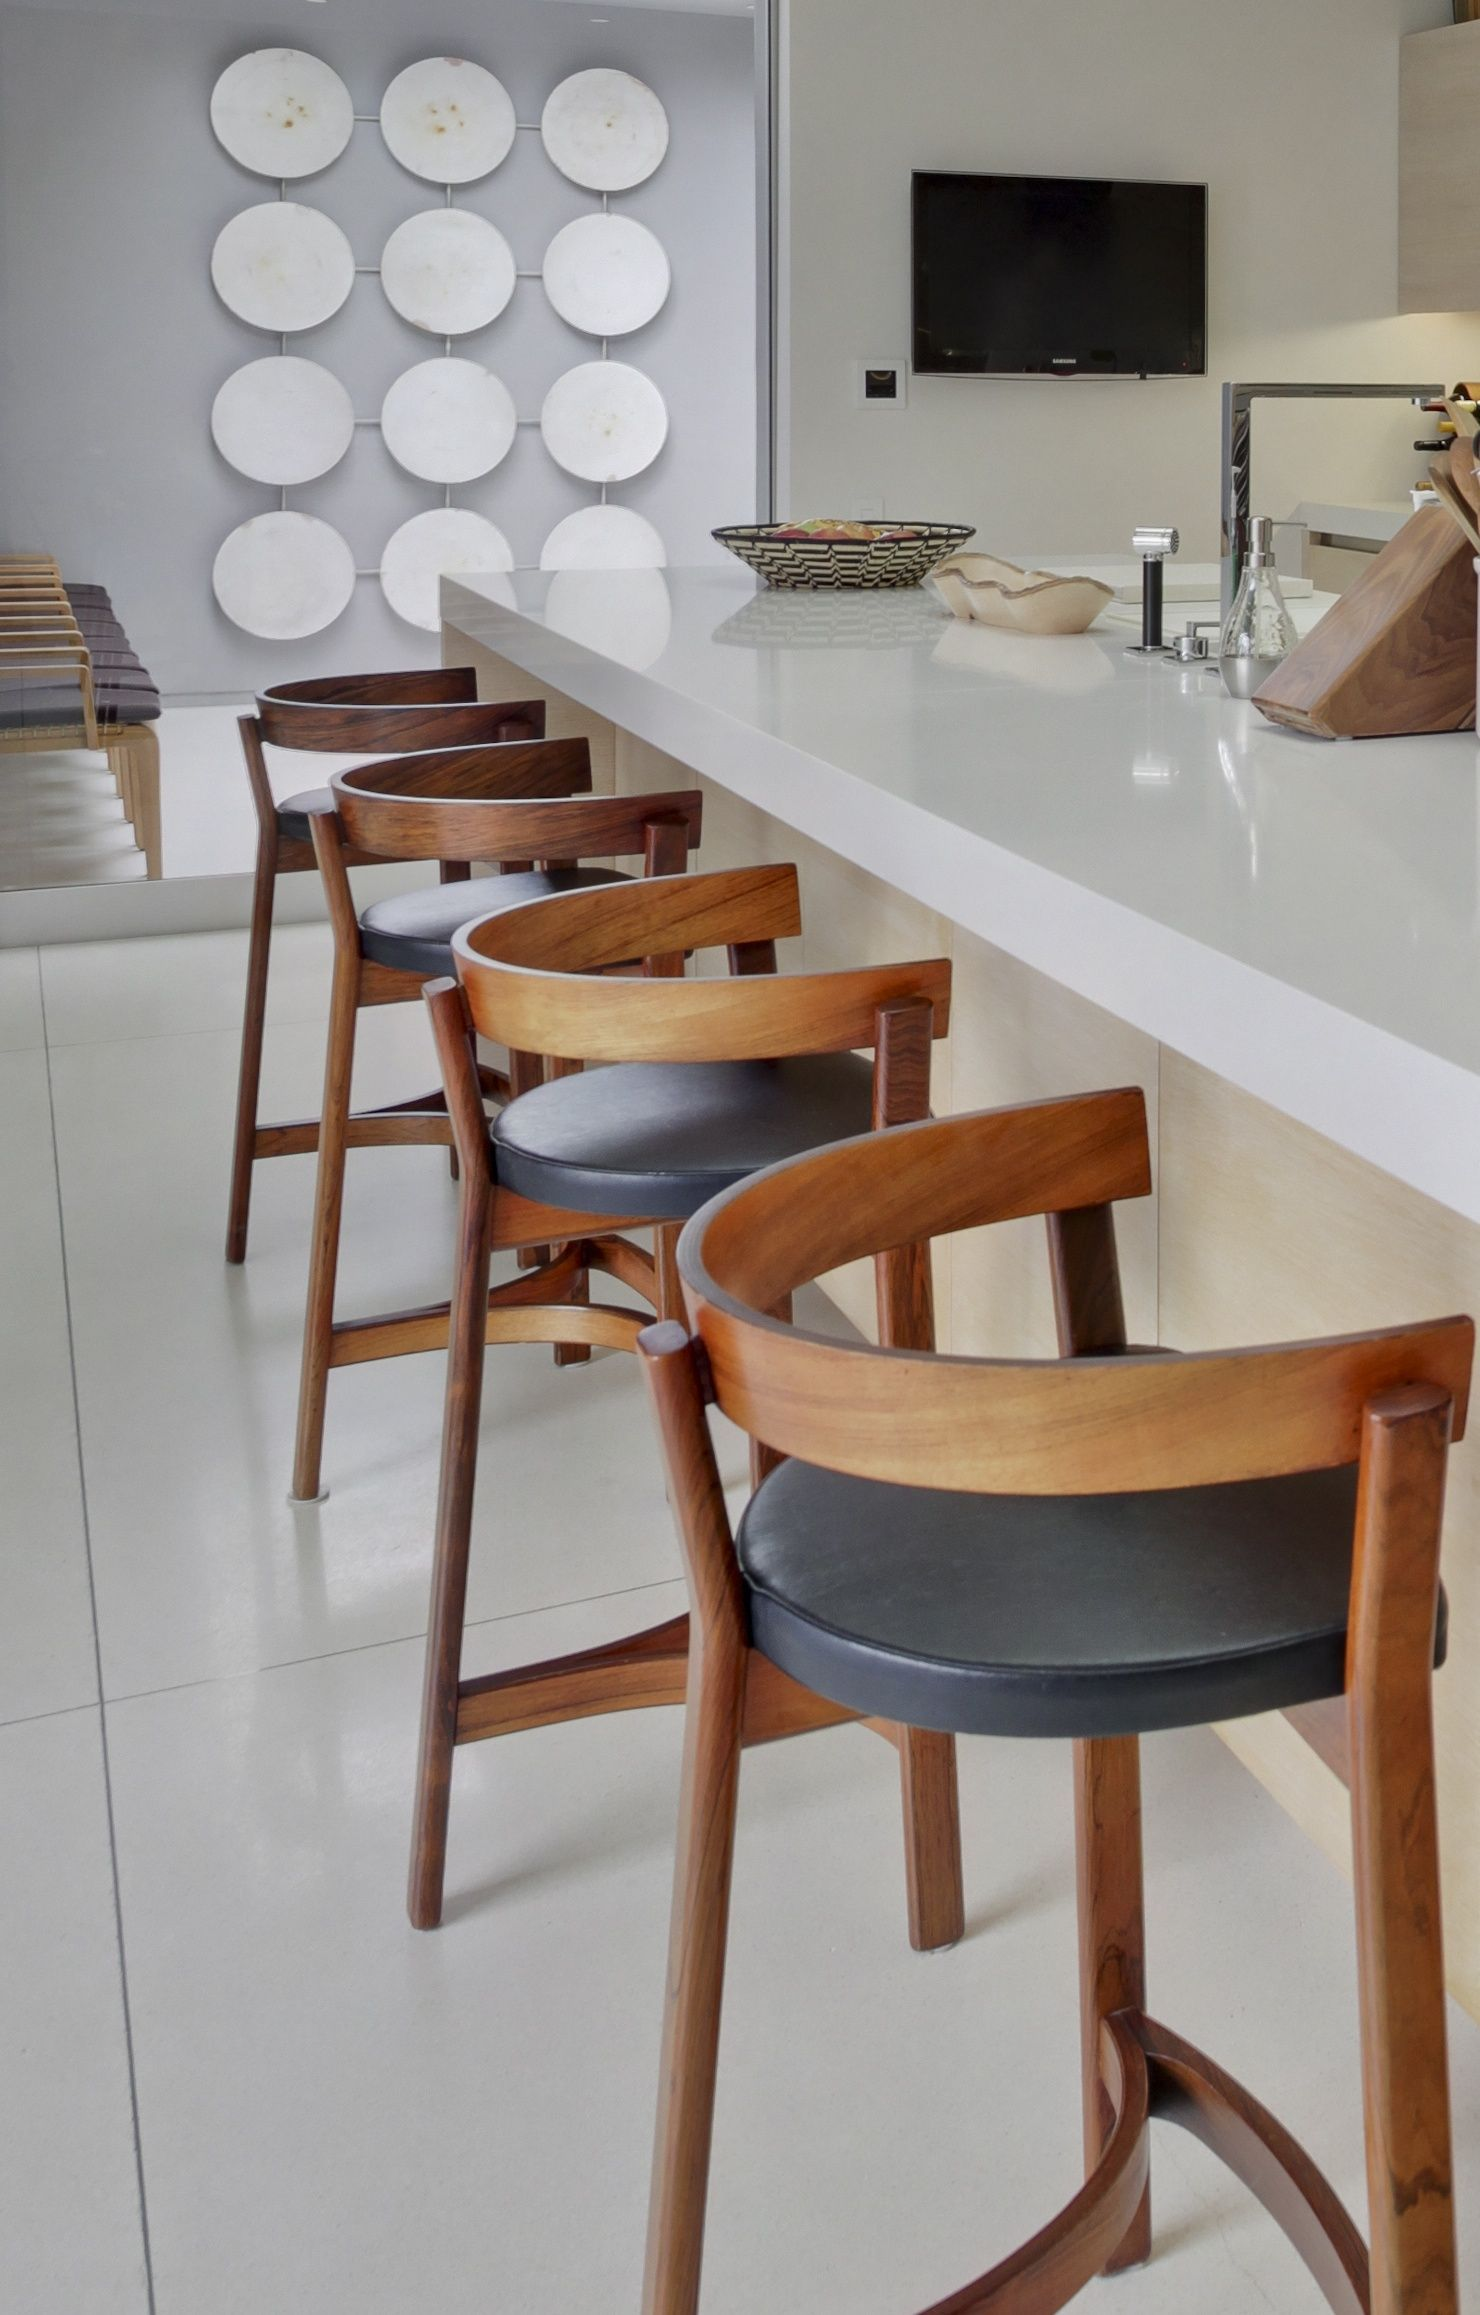 How To Choose A Bar Stool For Your Kitchen Check The Top Trends 2020 And Discover How To Choose A Bar Sto Home Bar Furniture Kitchen Stools Home Decor Kitchen